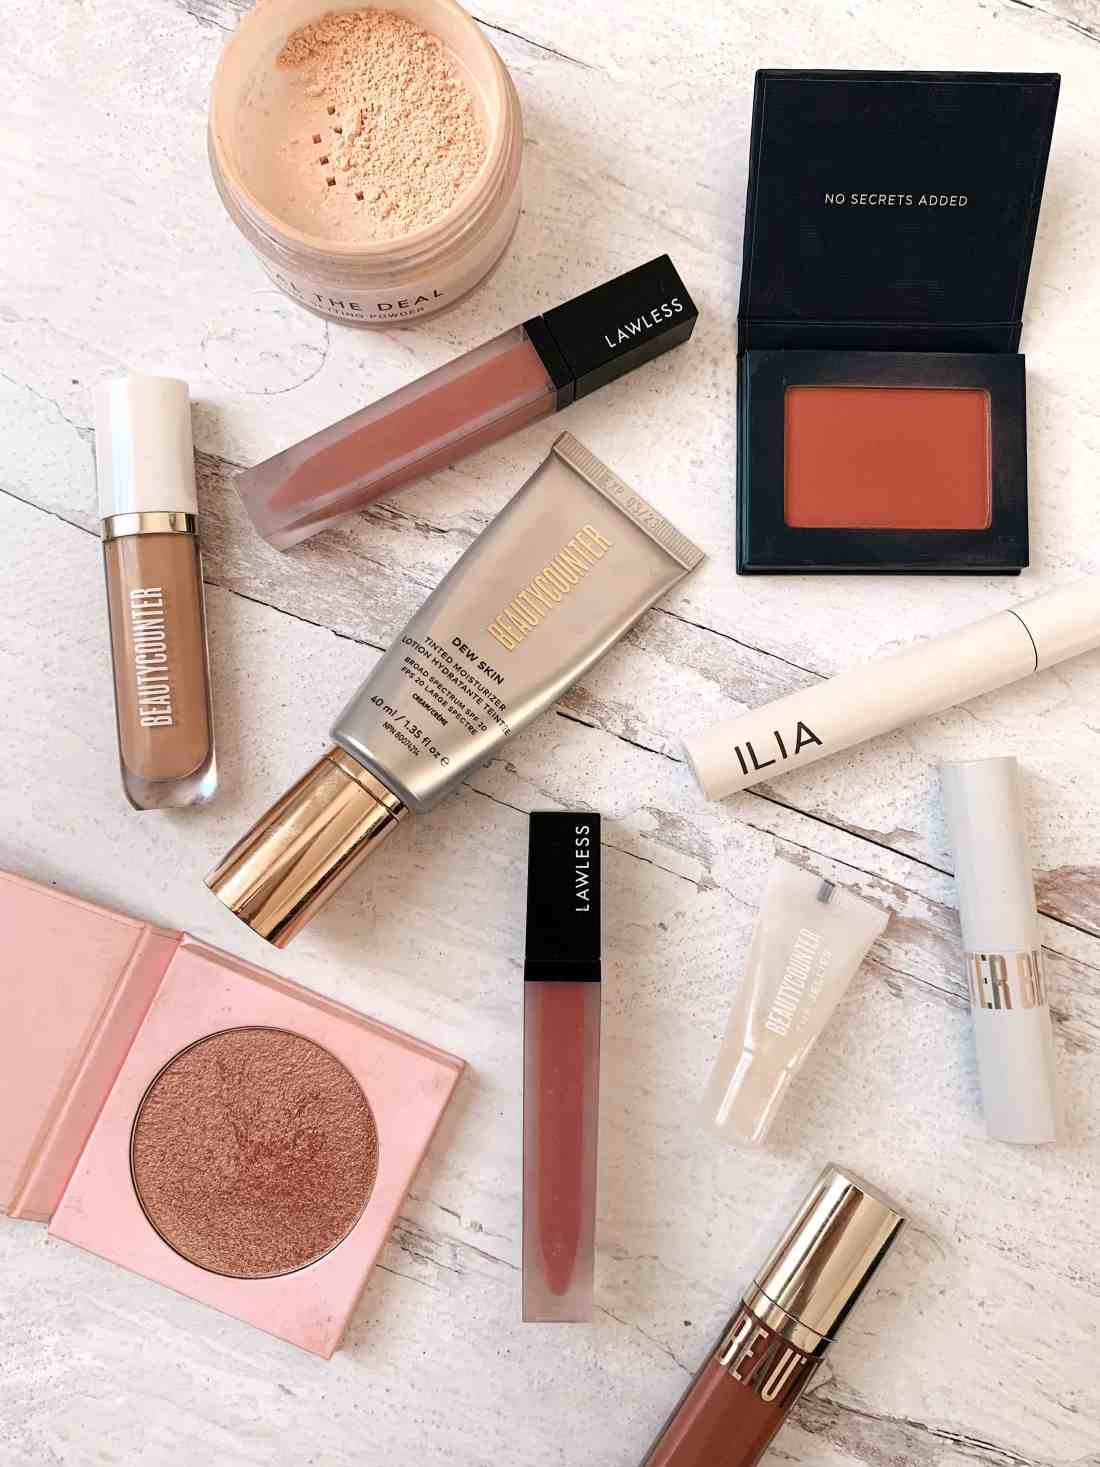 A variety of makeup products laid out on a white wood background.